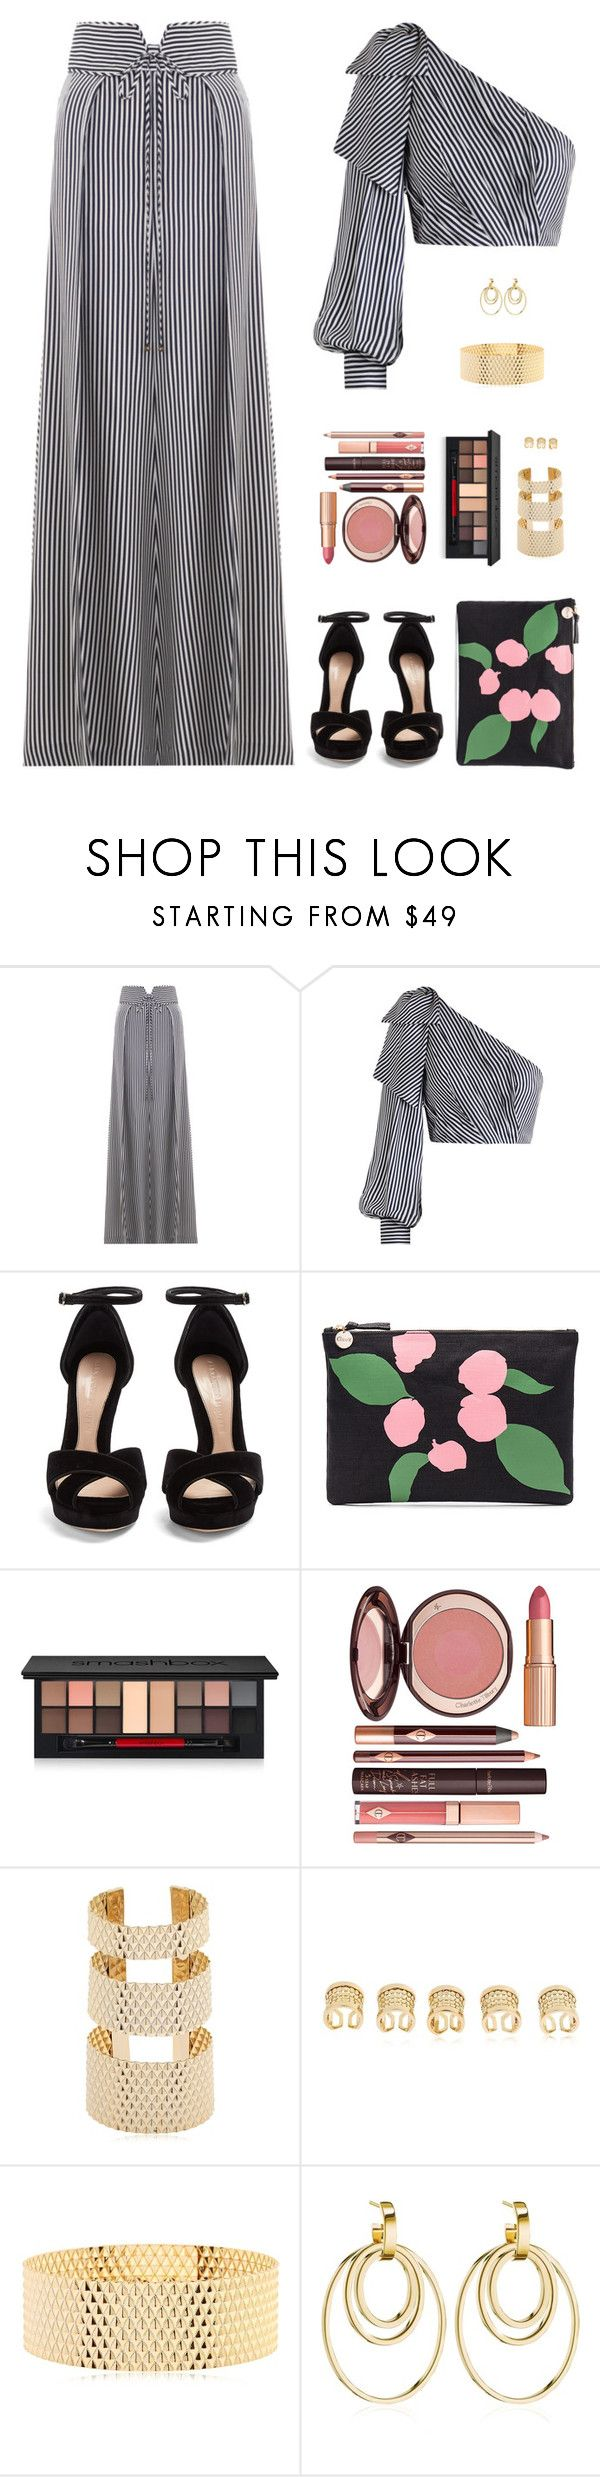 """Sin título #4945"" by mdmsb on Polyvore featuring moda, Zimmermann, Alexander McQueen, Clare V., Smashbox, Charlotte Tilbury, MVP y Vita Fede"